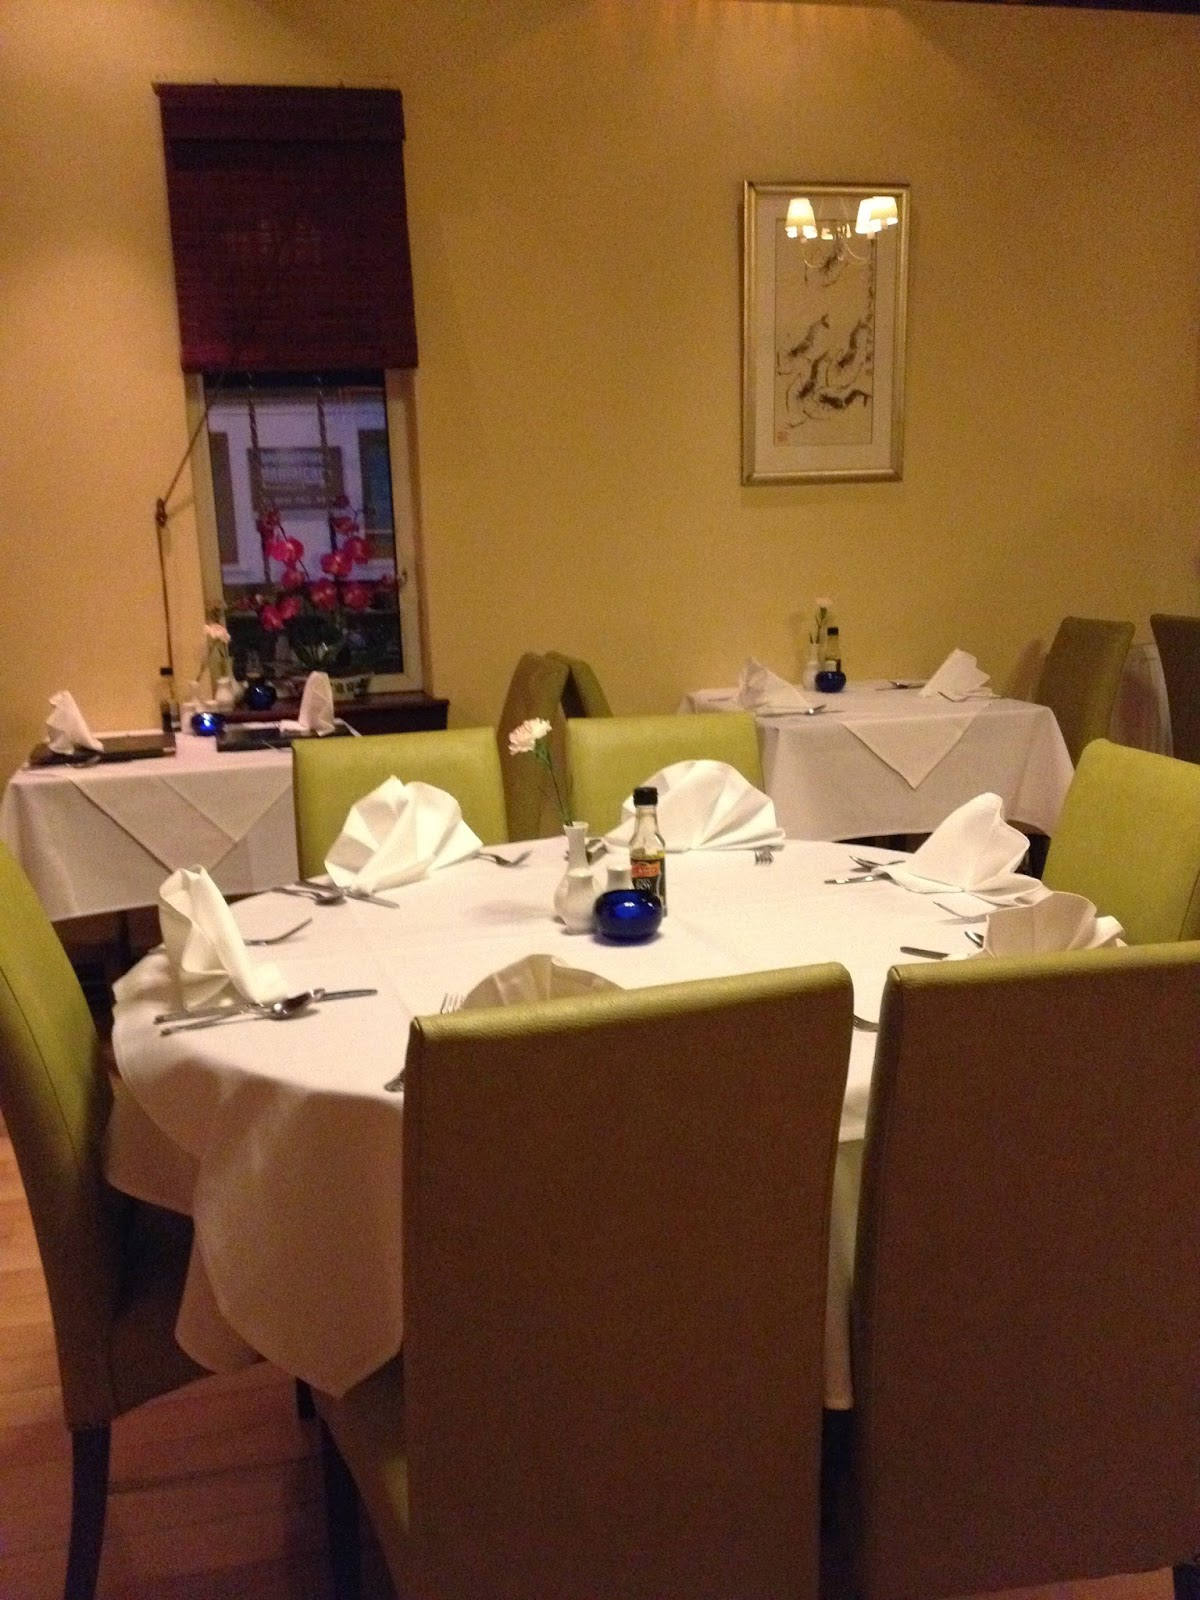 food, food, food, love food: Royal Garden welcomes you - Chinese ...